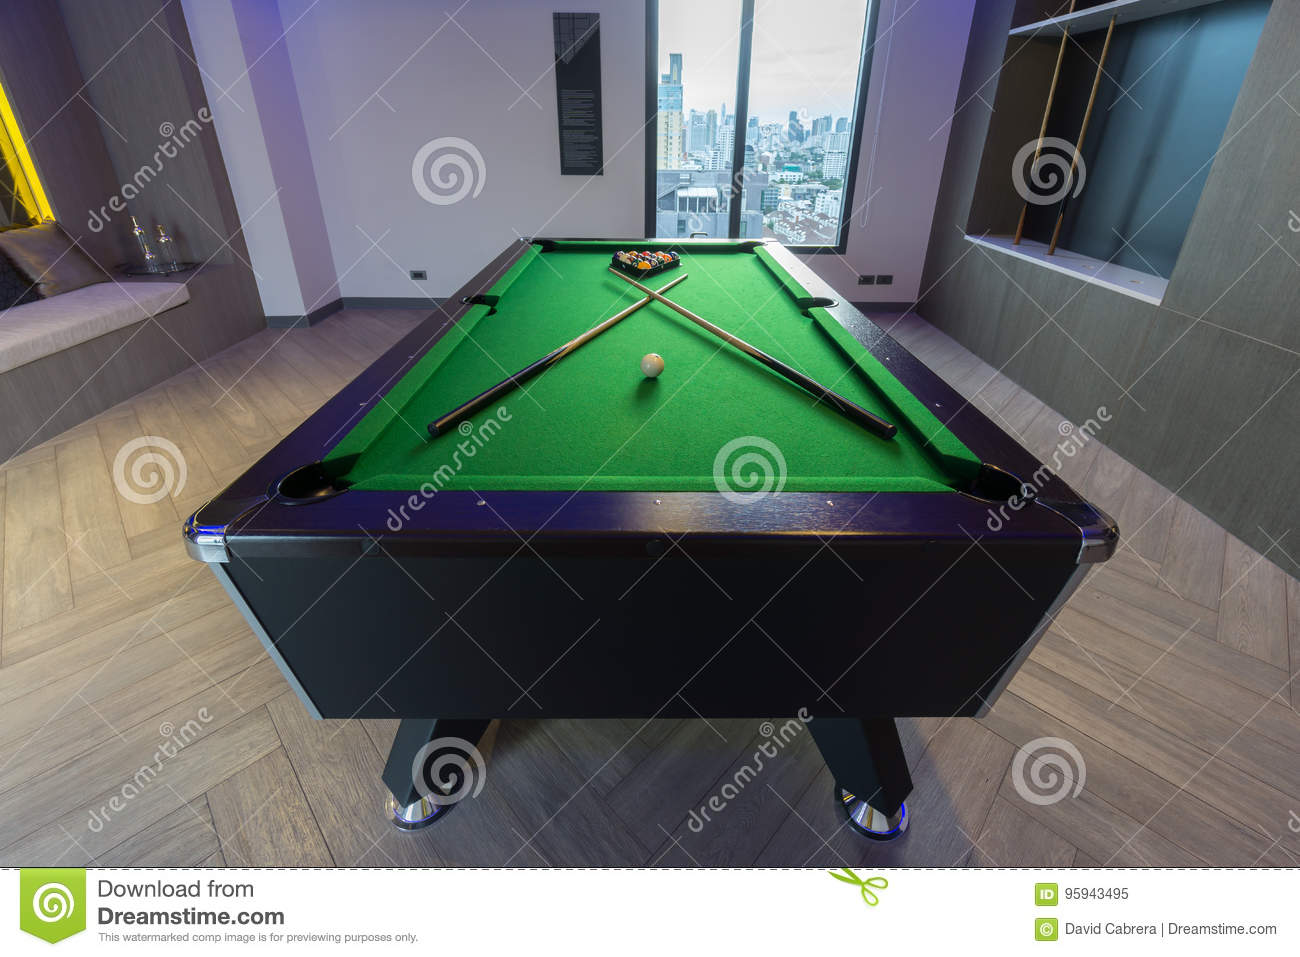 Snooker Pool Billiards green table with complete set of balls and two pool cues in a modern games room